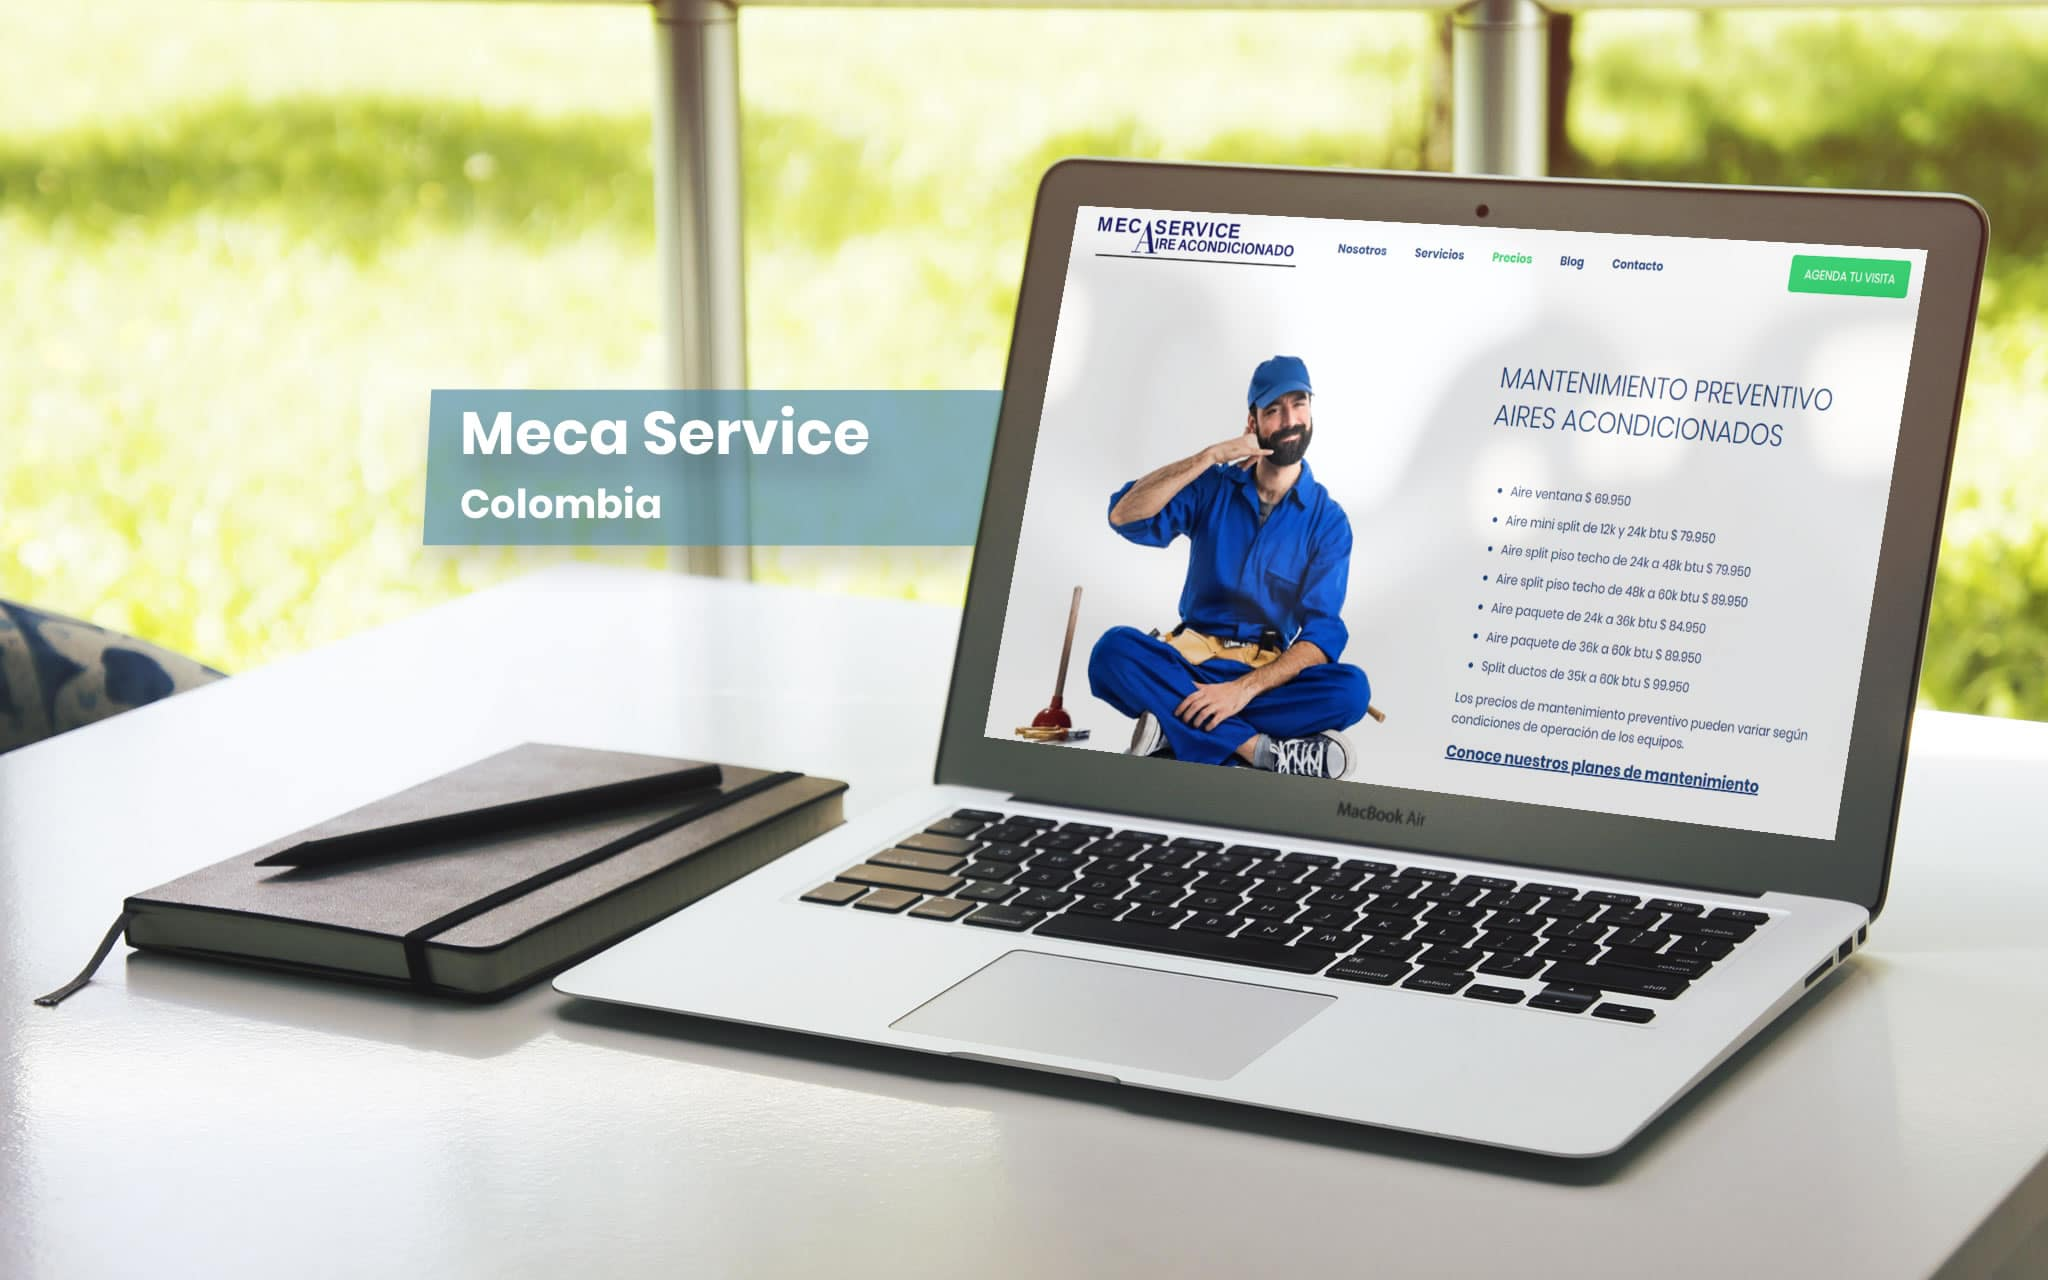 Meca Service - Colombia